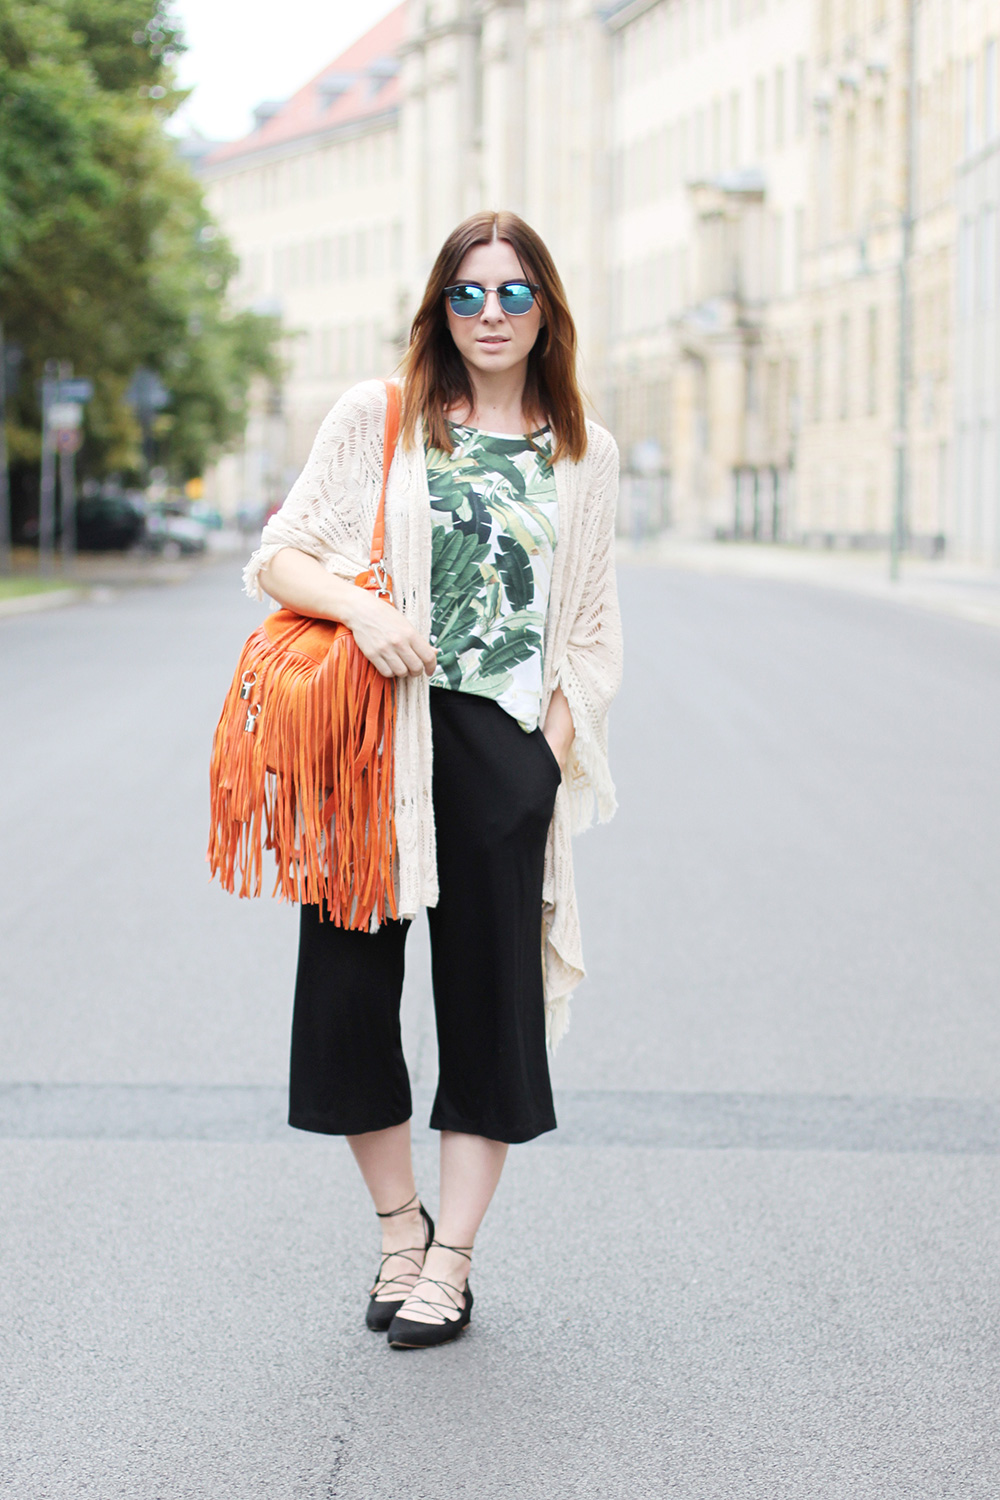 modeblog, who is mocca, blogger, tirol, tirolblog, innsbruck, austrianblogger, fashion week berlin, ss 2016, culotte kombiniere, strappy ballerinas, sarenza, bucket bag fringes orange river island, whoismocca.com